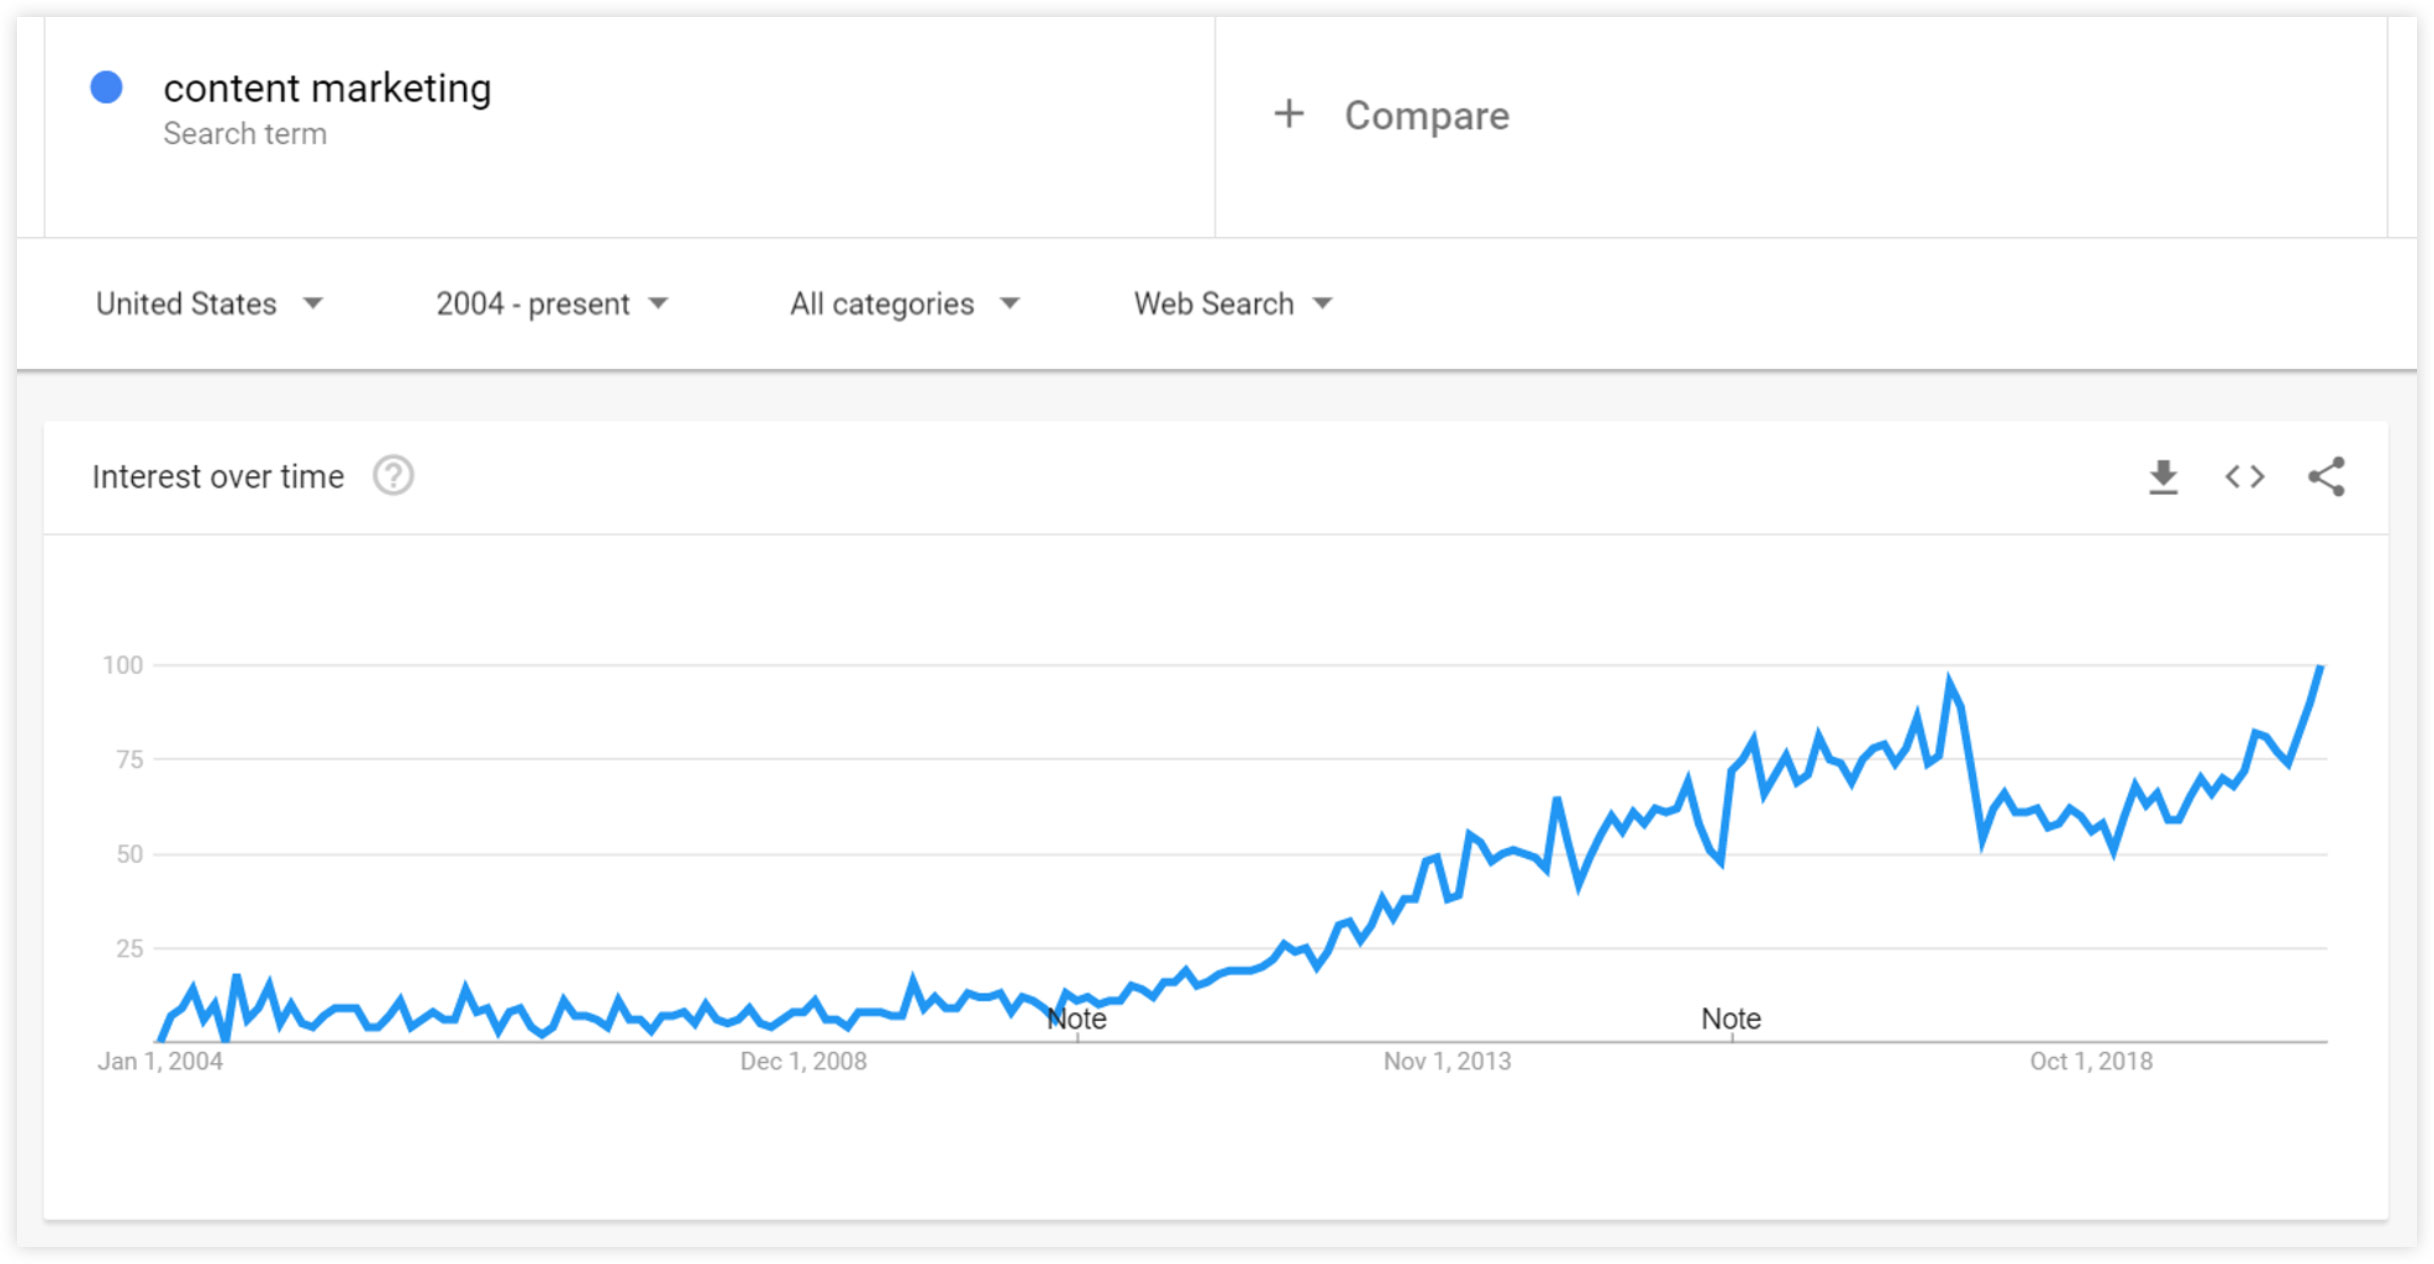 google trend growth on content marketing